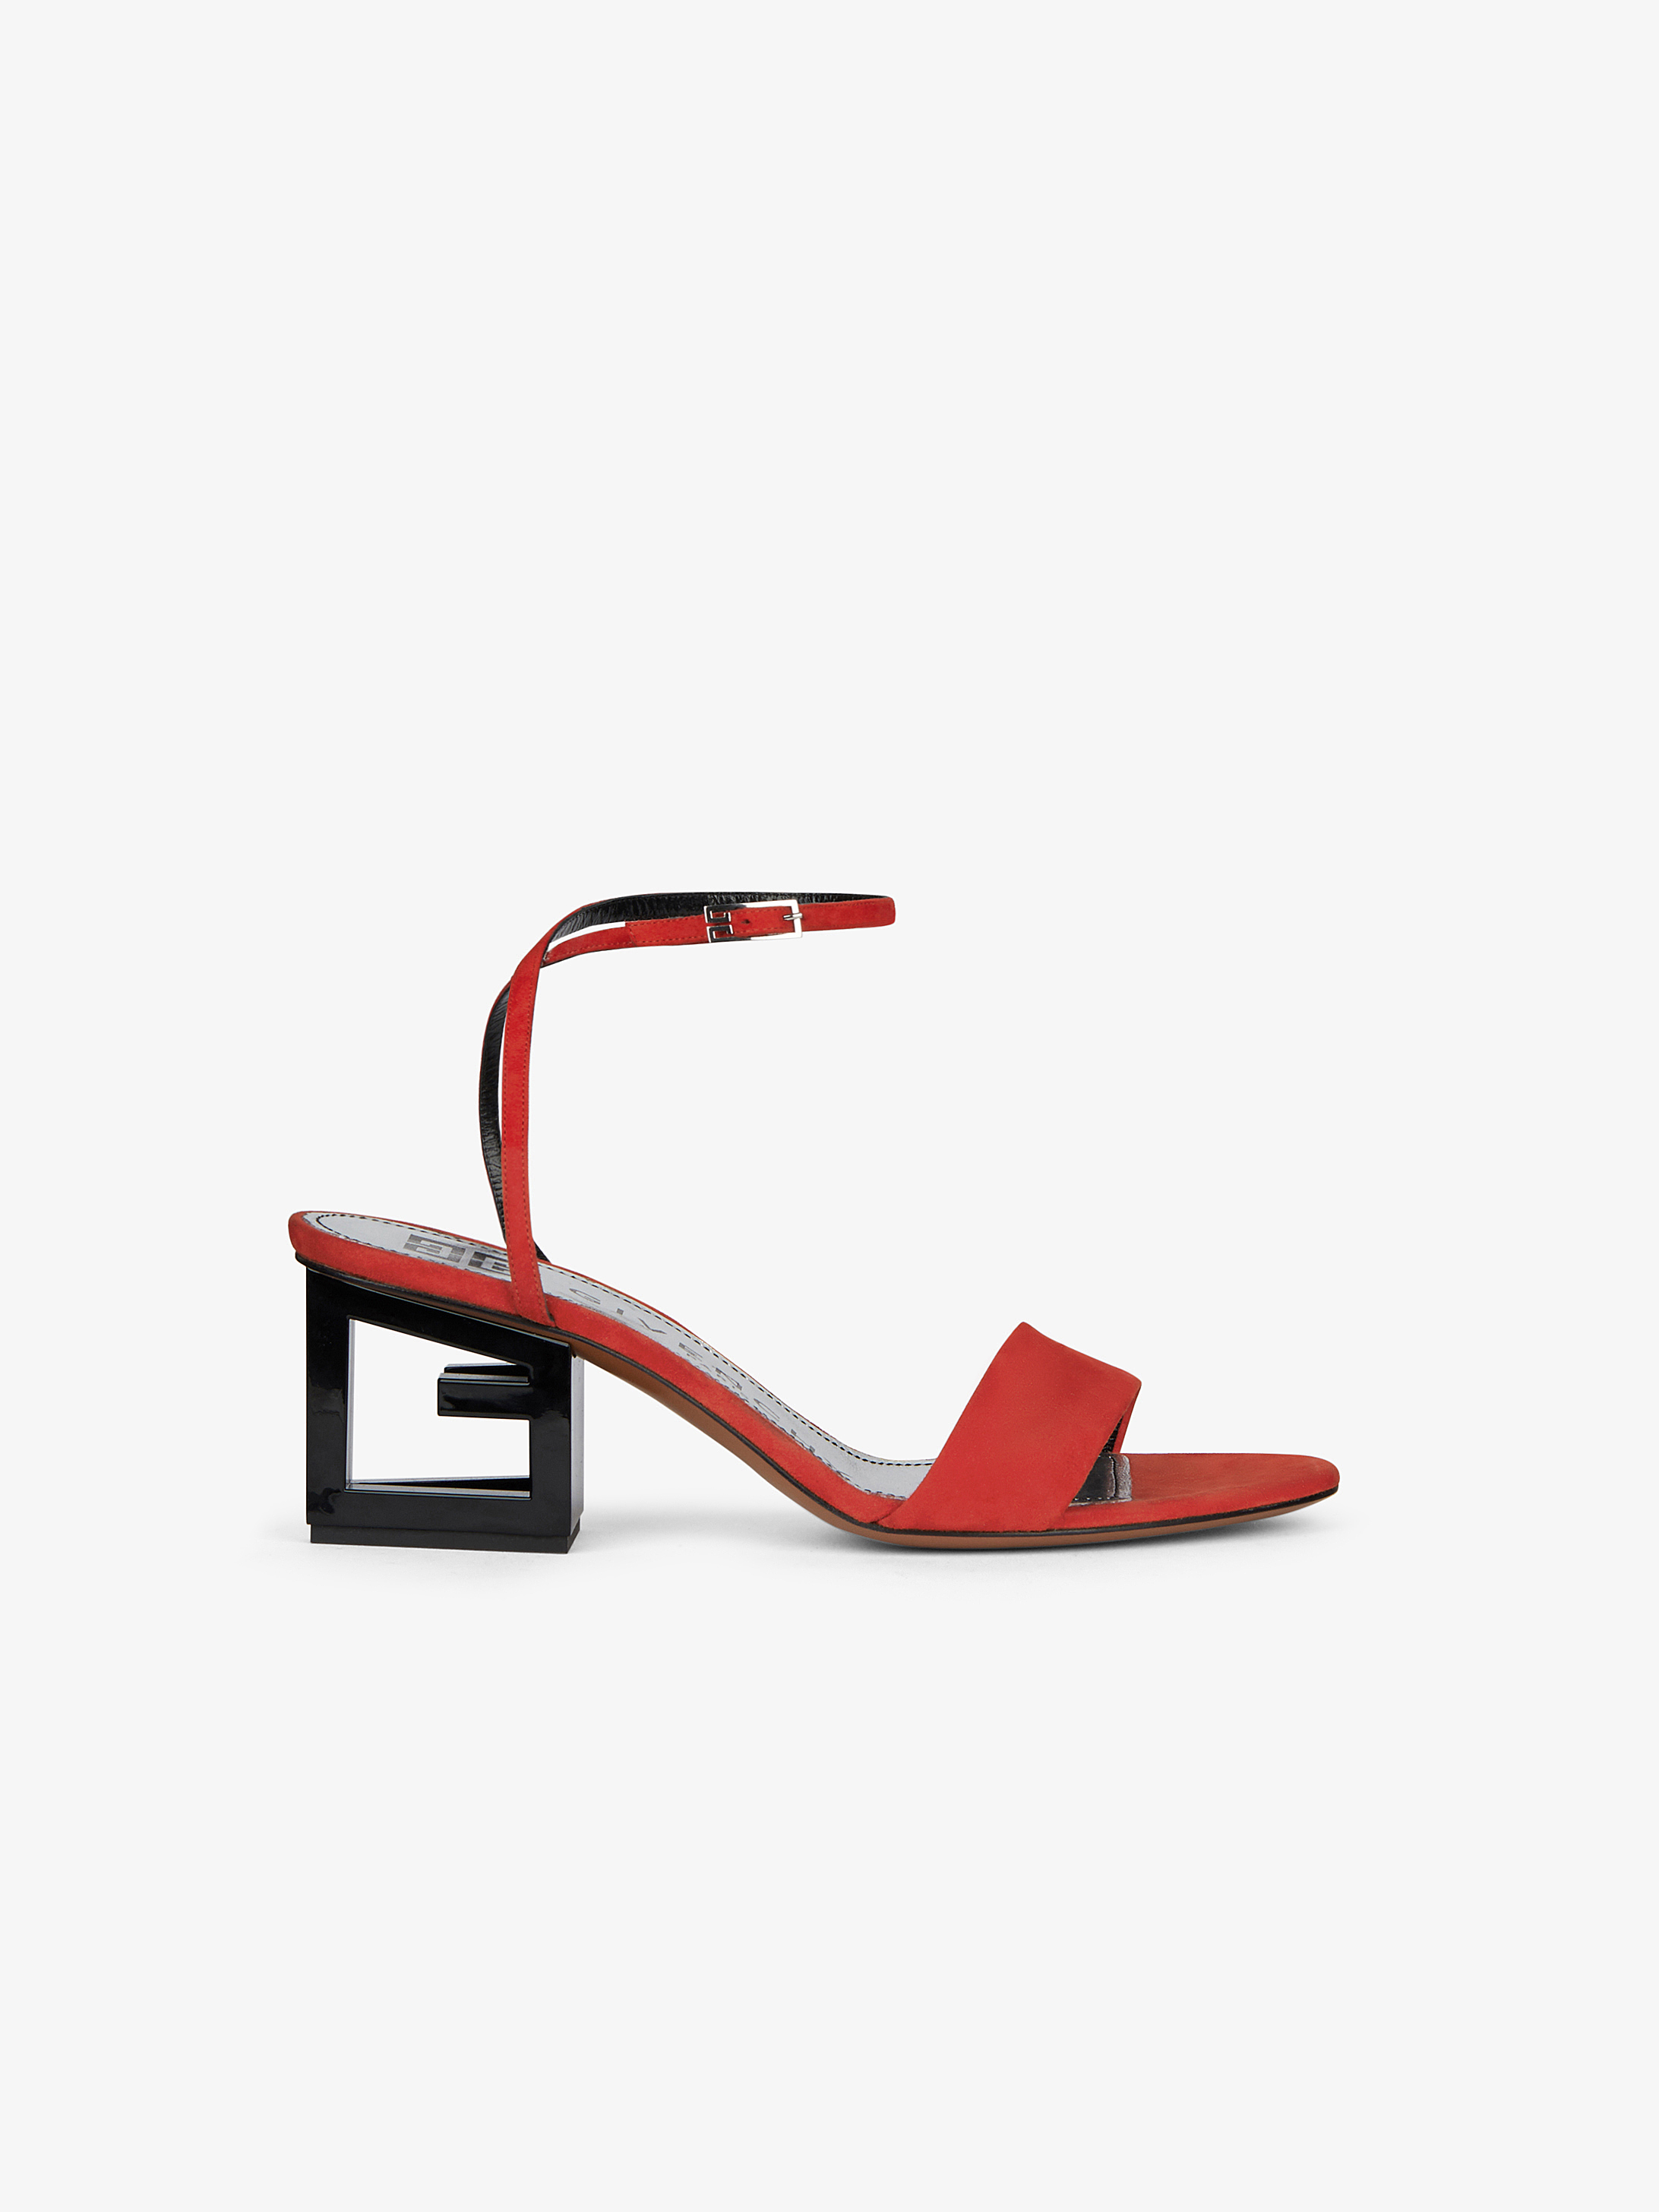 G heel sandals in leather